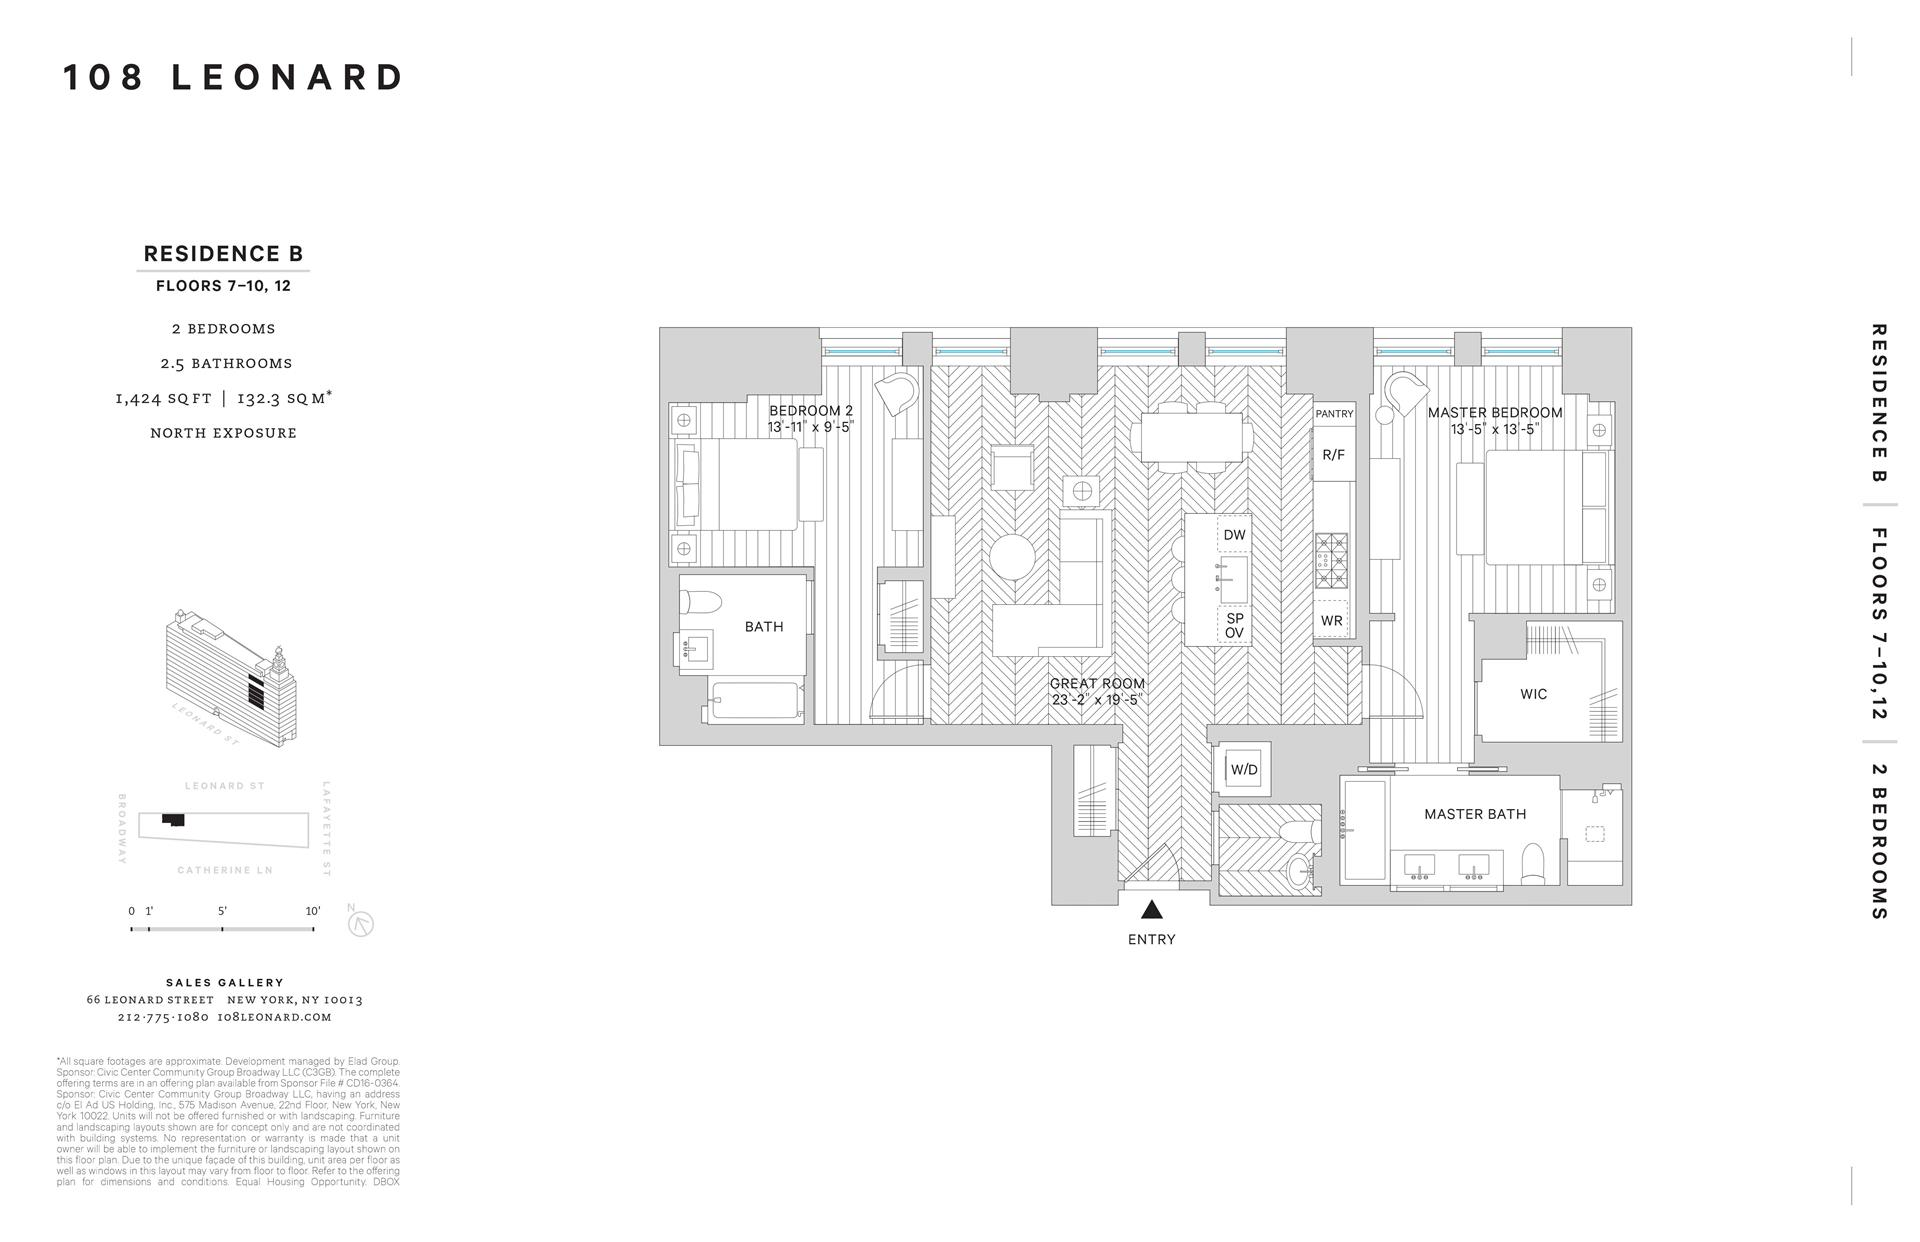 Floor plan of 108 Leonard Street, 7B - TriBeCa, New York